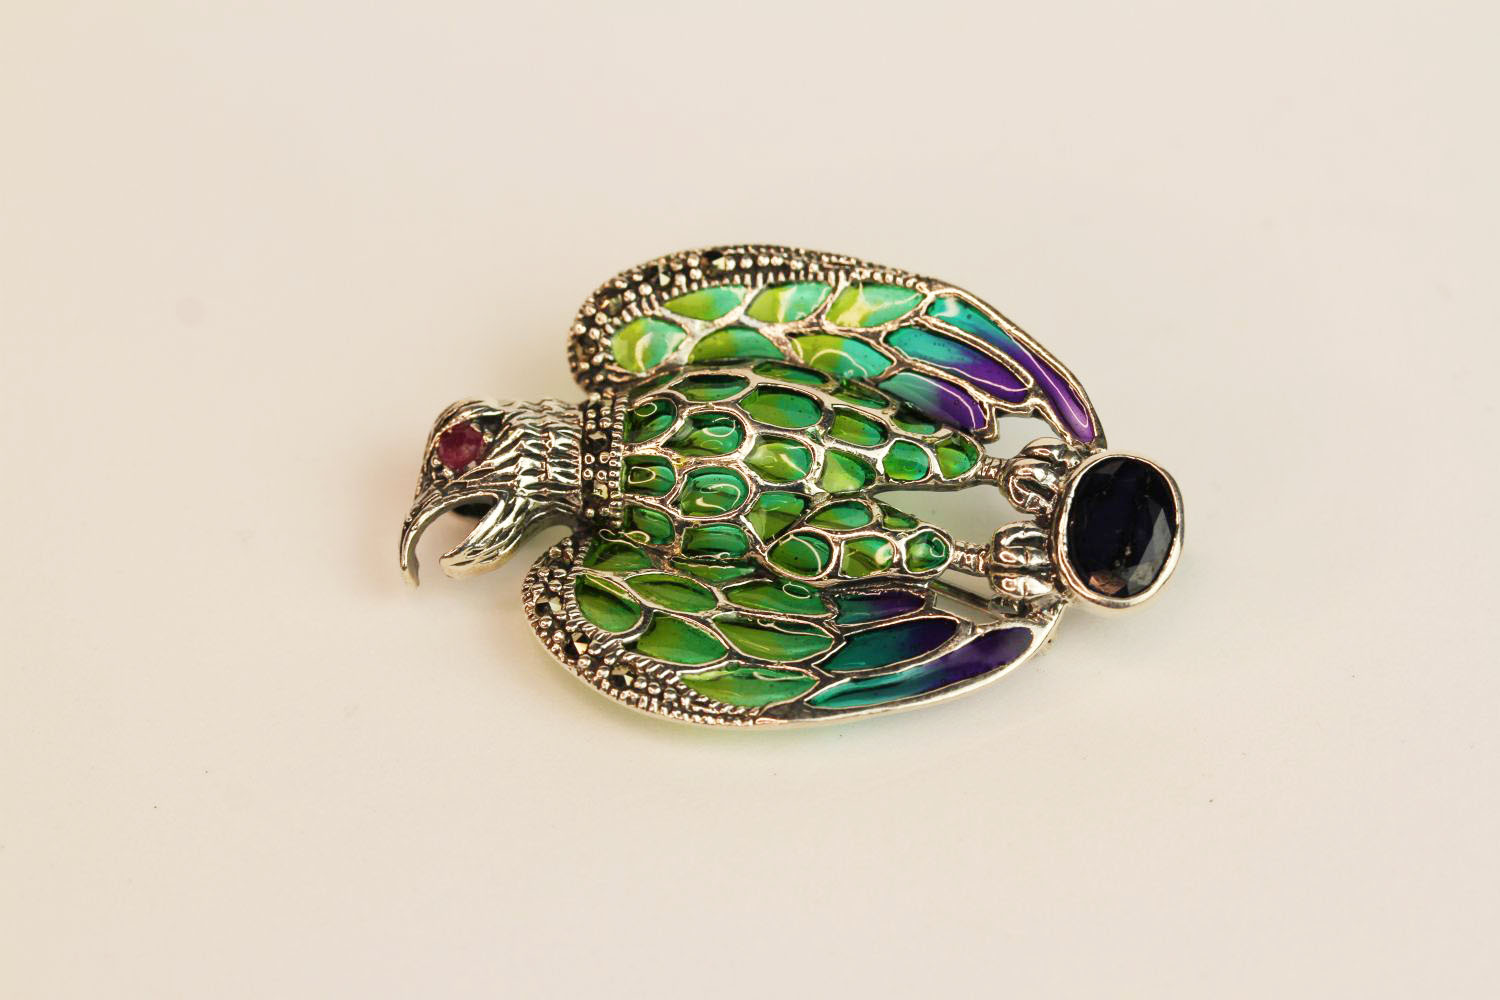 Silver plique-à-jour eagle brooch/pendant with sapphire, ruby eye, marcasites and enamel, - Image 2 of 3